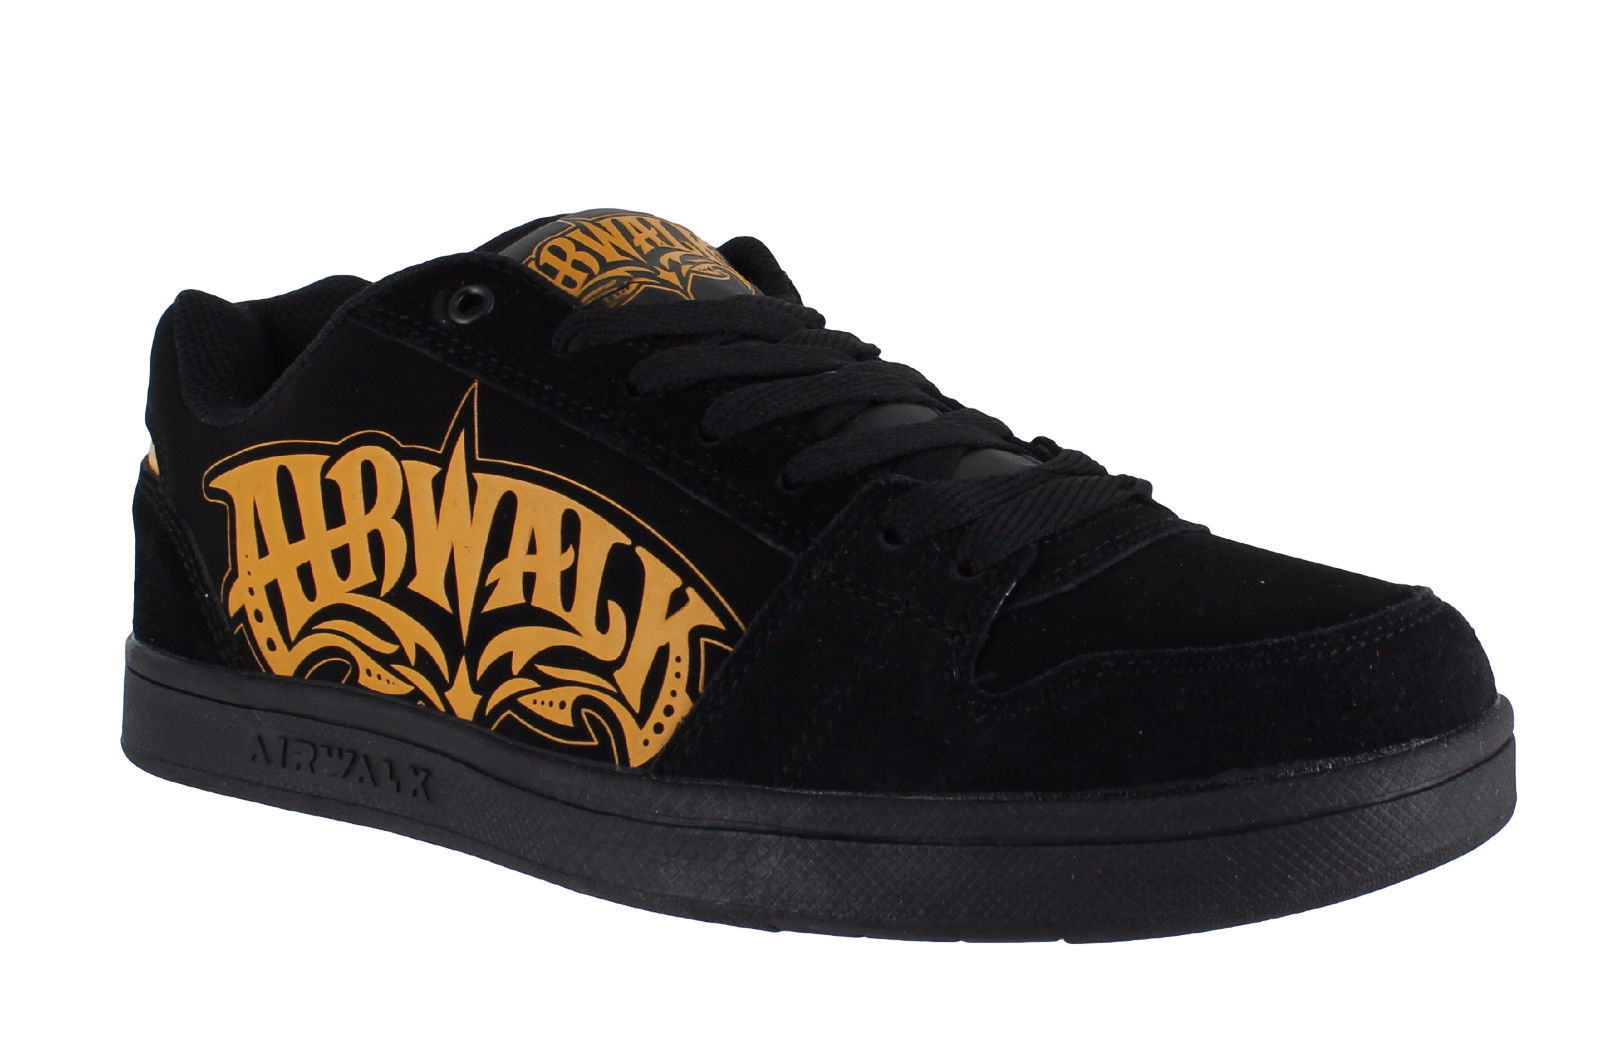 Mens Airwalk Casual Skate Lace Up Padded Shoes Trainers